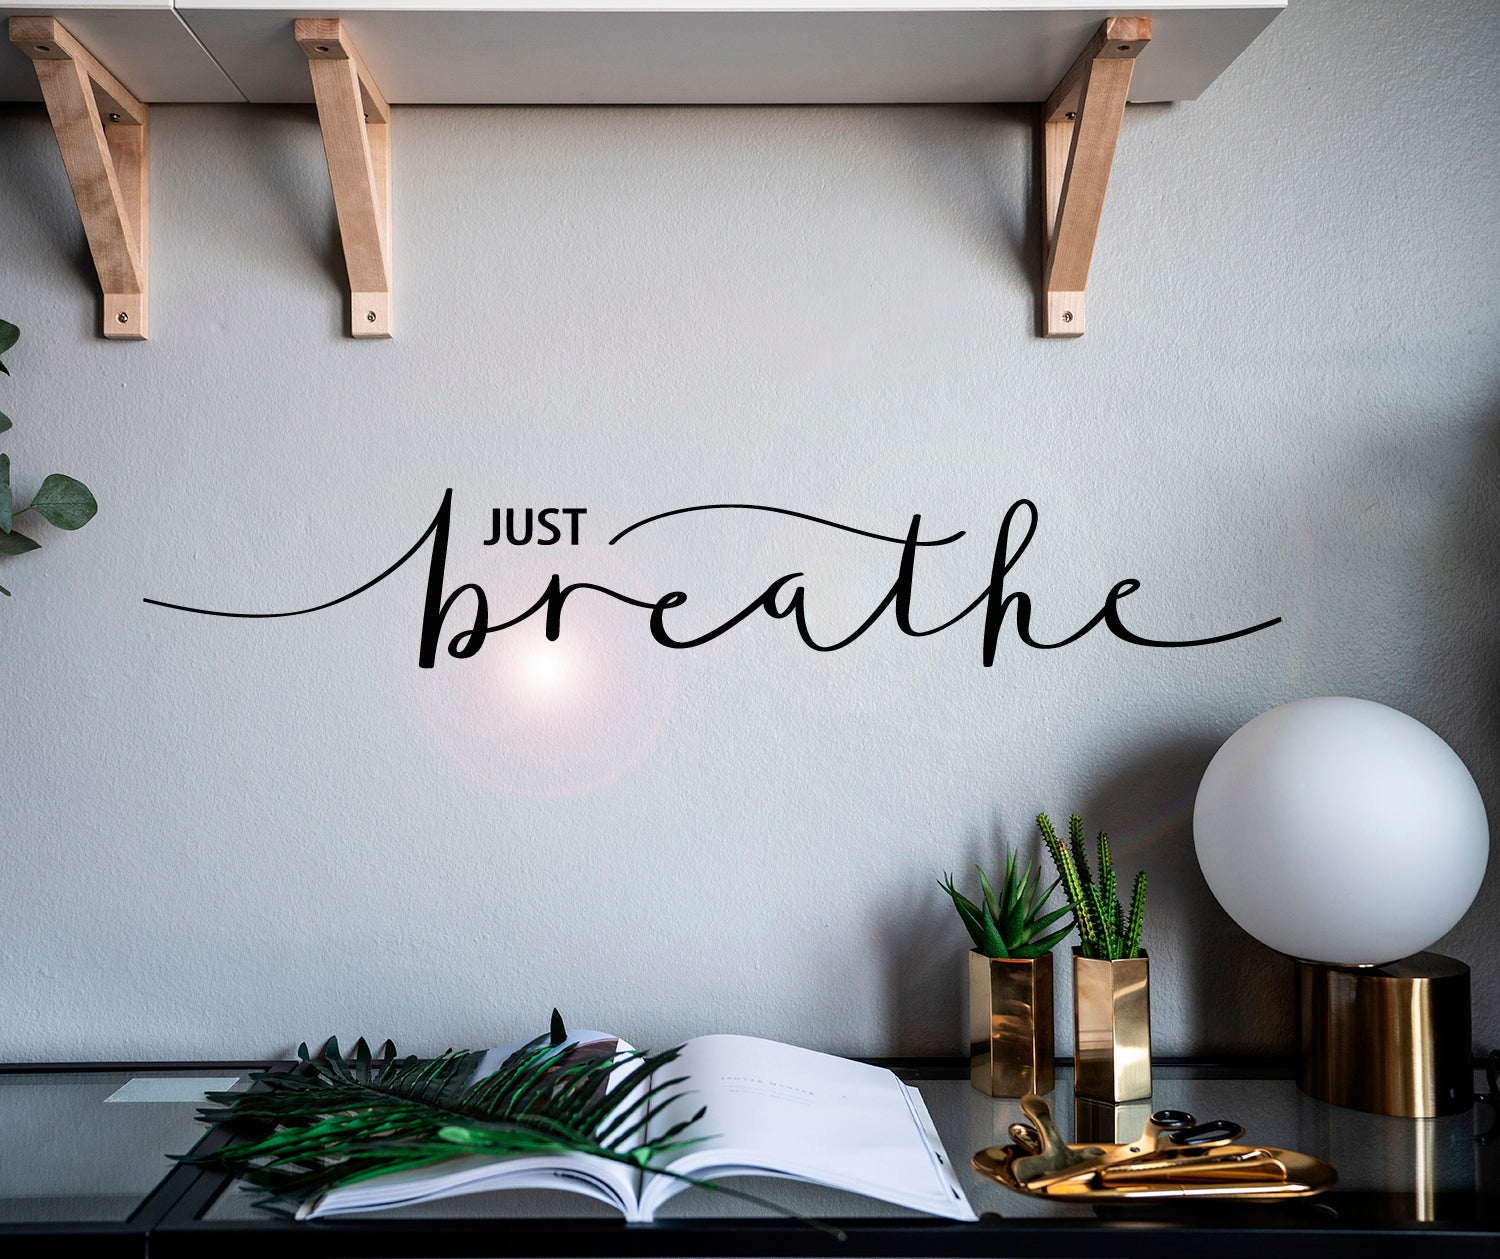 Vinyl Wall Decal Inspiring Quote Just Breathe Words Letter Stickers Mural 28.5 in x 5 in gz075